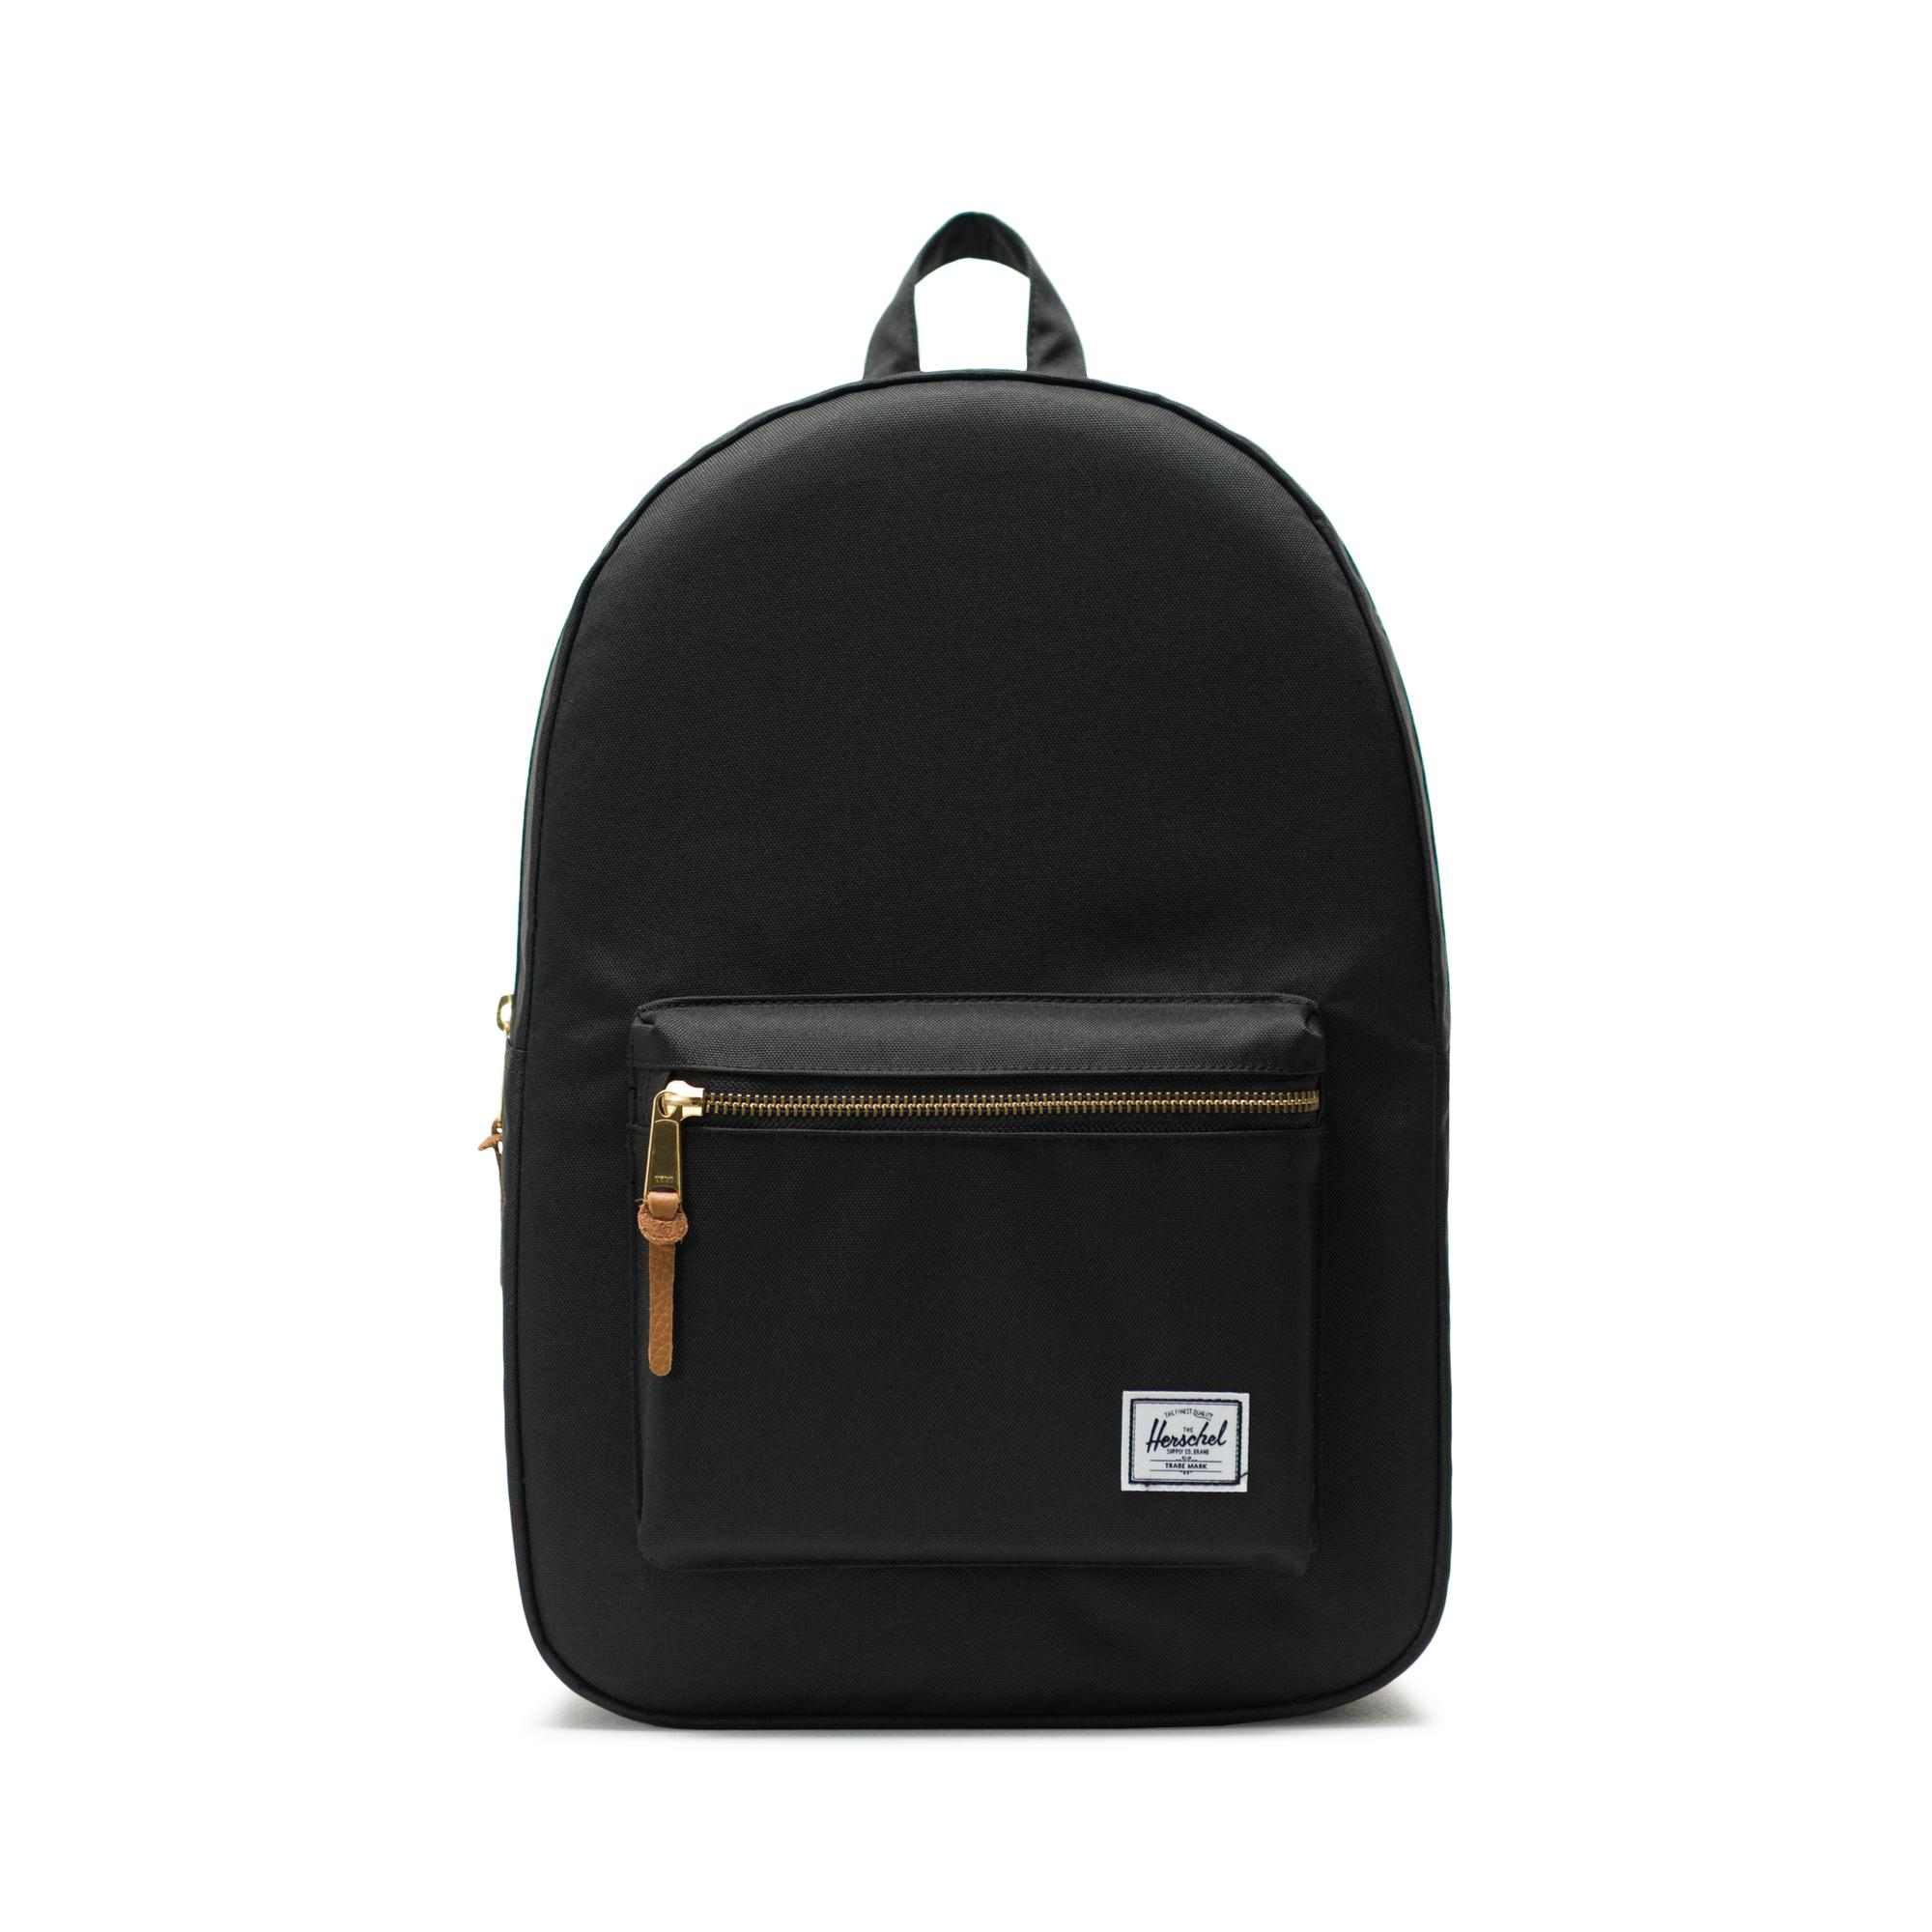 Settlement Backpack Herschel Supply Company Zara Double Strap Bag